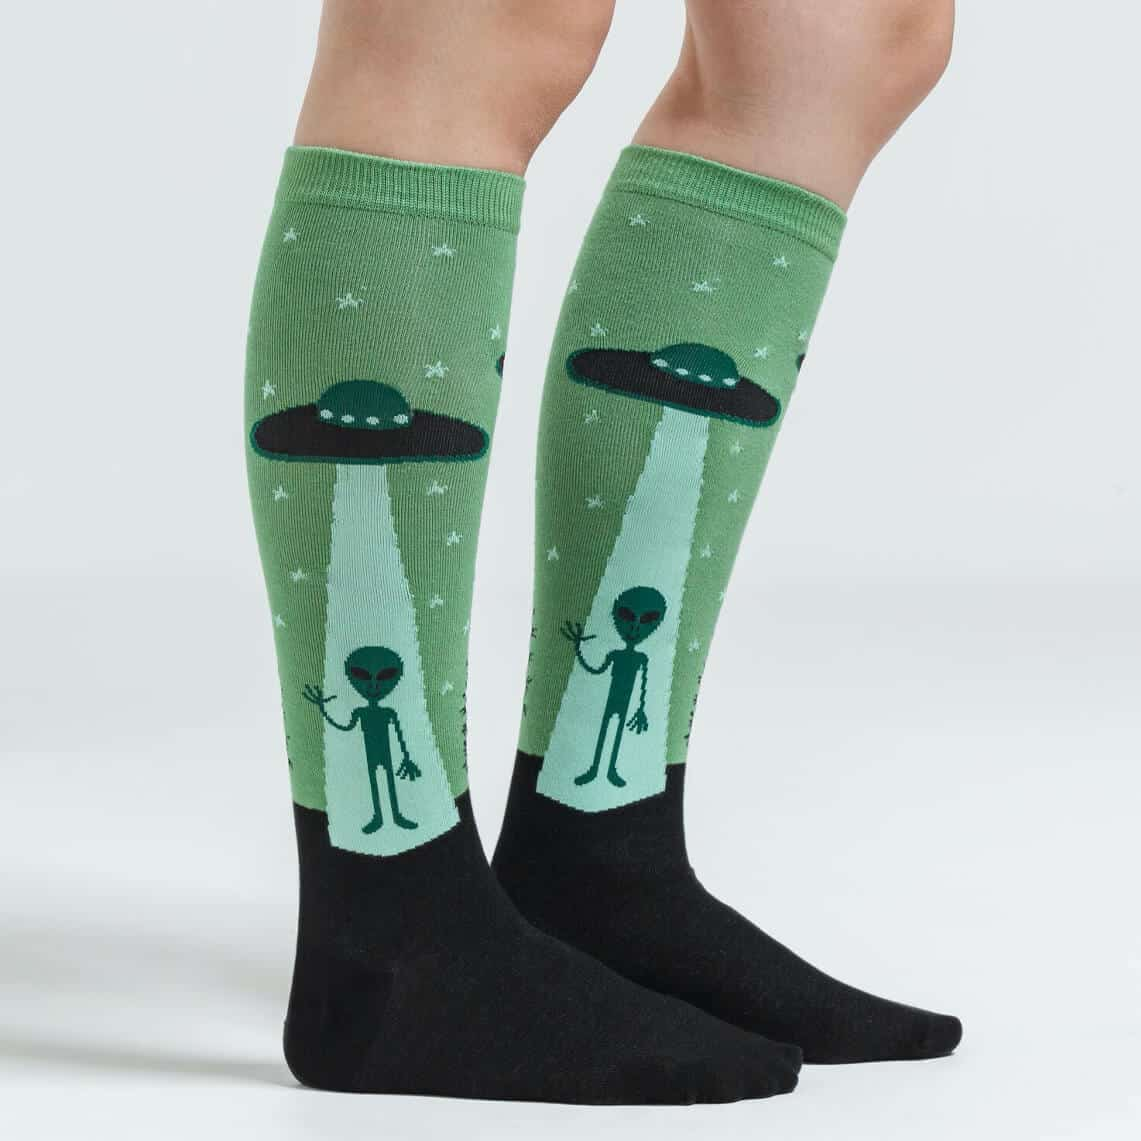 I Believe Knee High Alien Socks